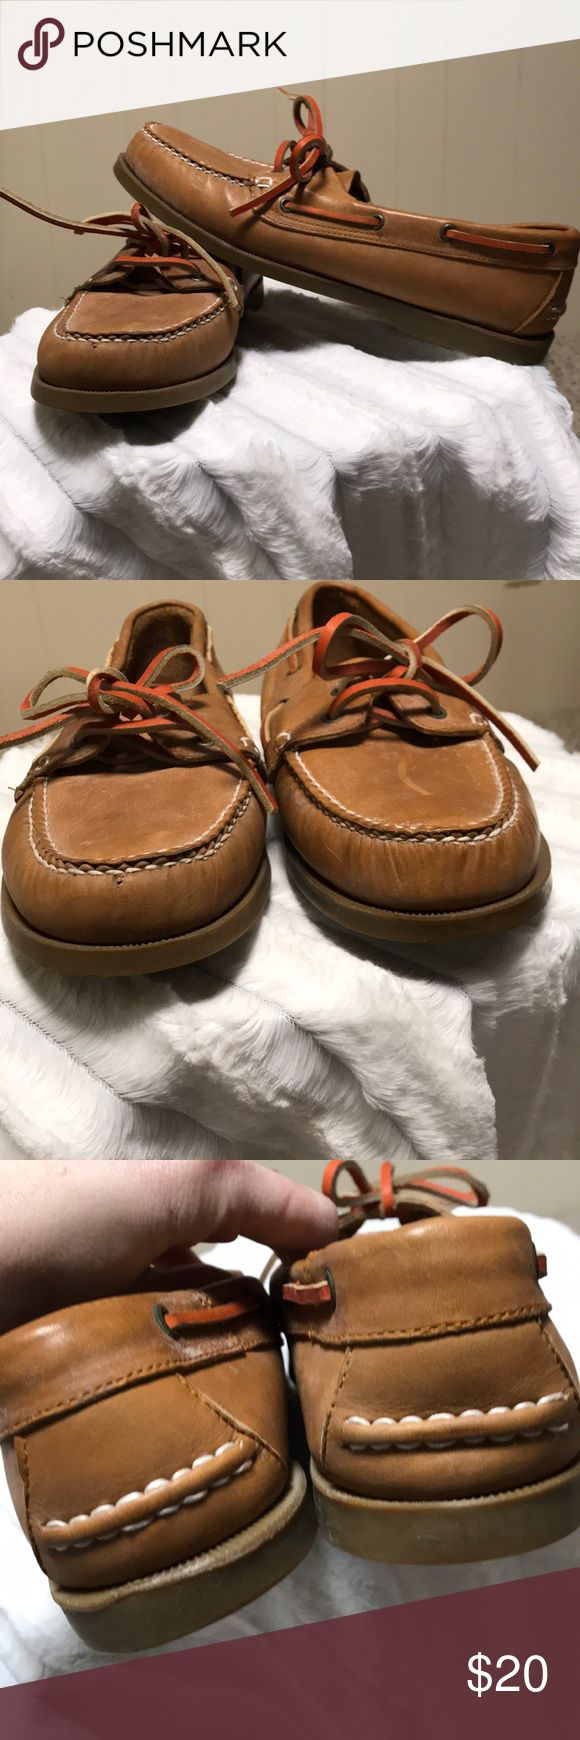 Trader Bay men's brown boat shoes NWOT No box. Never worn. Light brown. Orange laces. Snag a deal! Size is 9D. Bundling is fun; check out my other items & save!  Home is smoke free/ cat friendly. No price talk in comments. No trades or holds. Trader Bay Shoes Boat Shoes